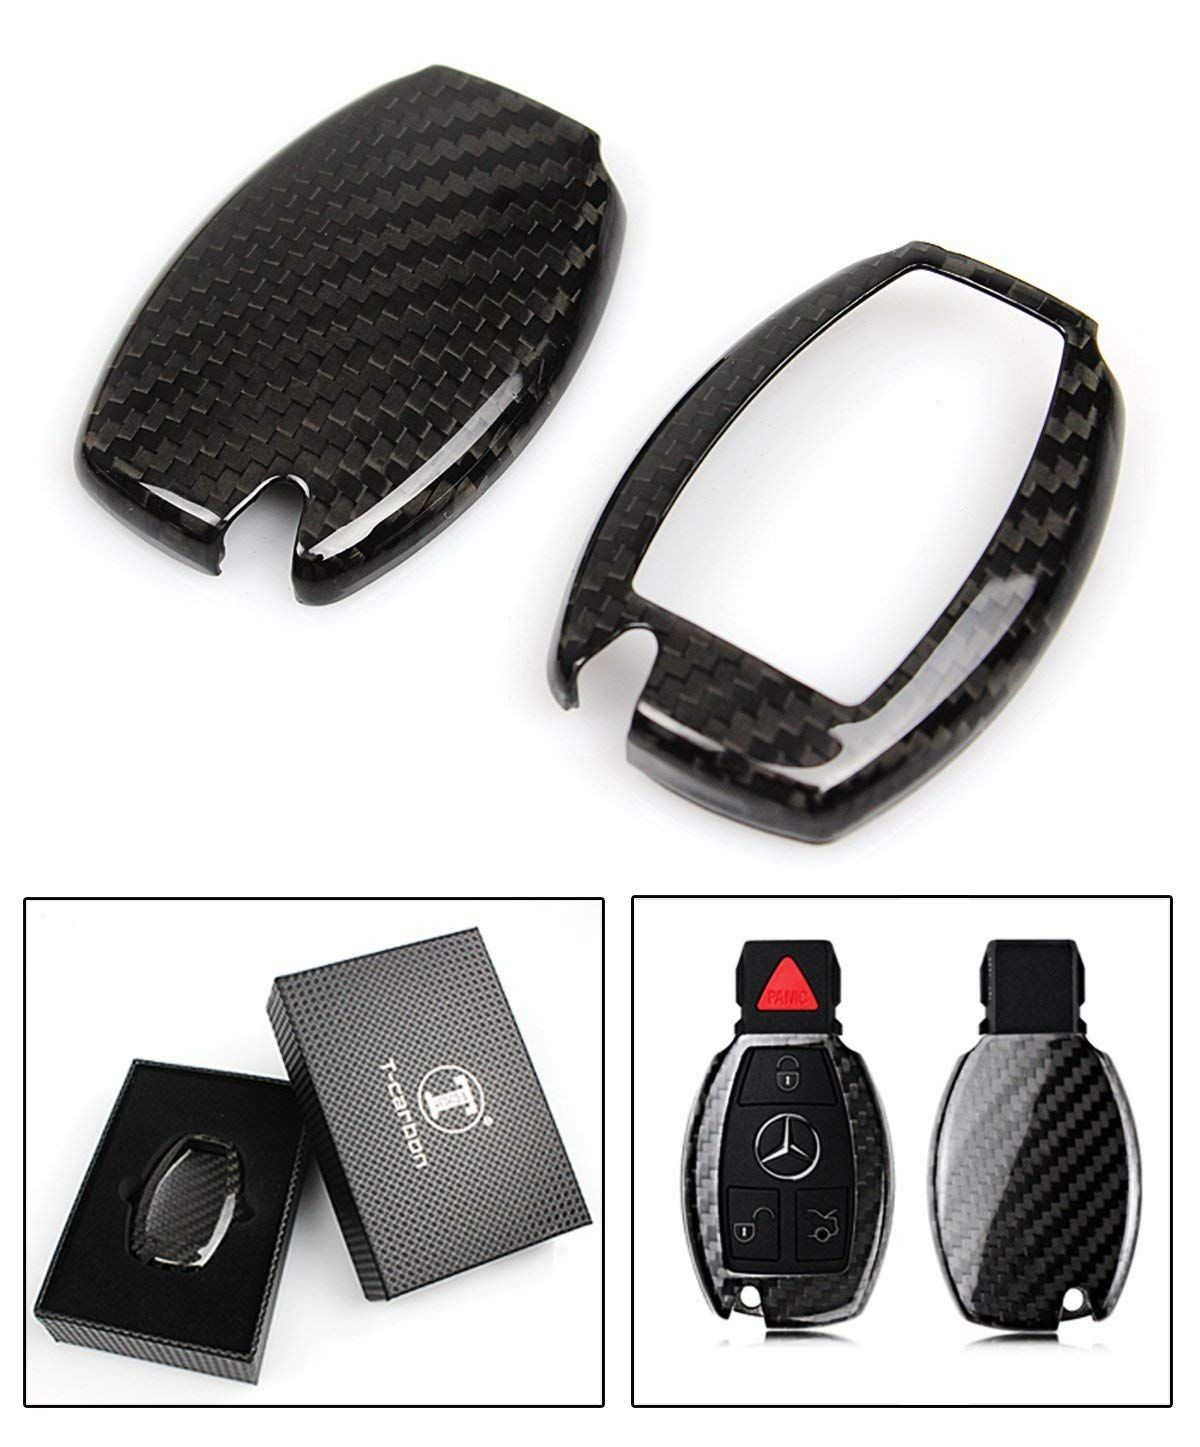 Cuztom Tuning Luxury Carbon Fiber Key Protective Case Cover For Mercedes Benz Keyless Entry Smart Fob Price Protective Cases Pure Products Leather Keychain